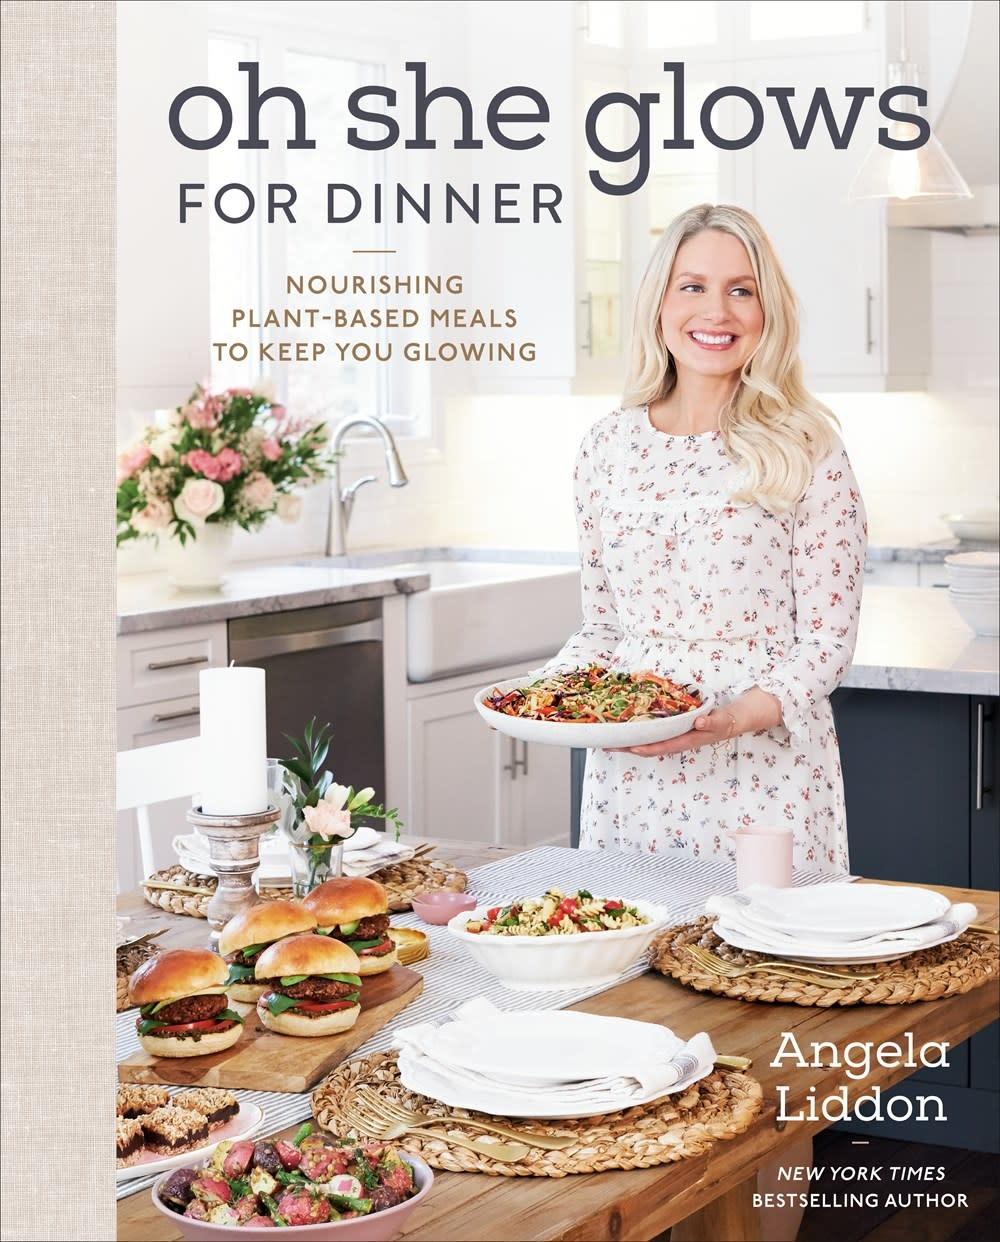 Avery Oh She Glows for Dinner: Nourishing Plant-Based Meals to Keep You Glowing